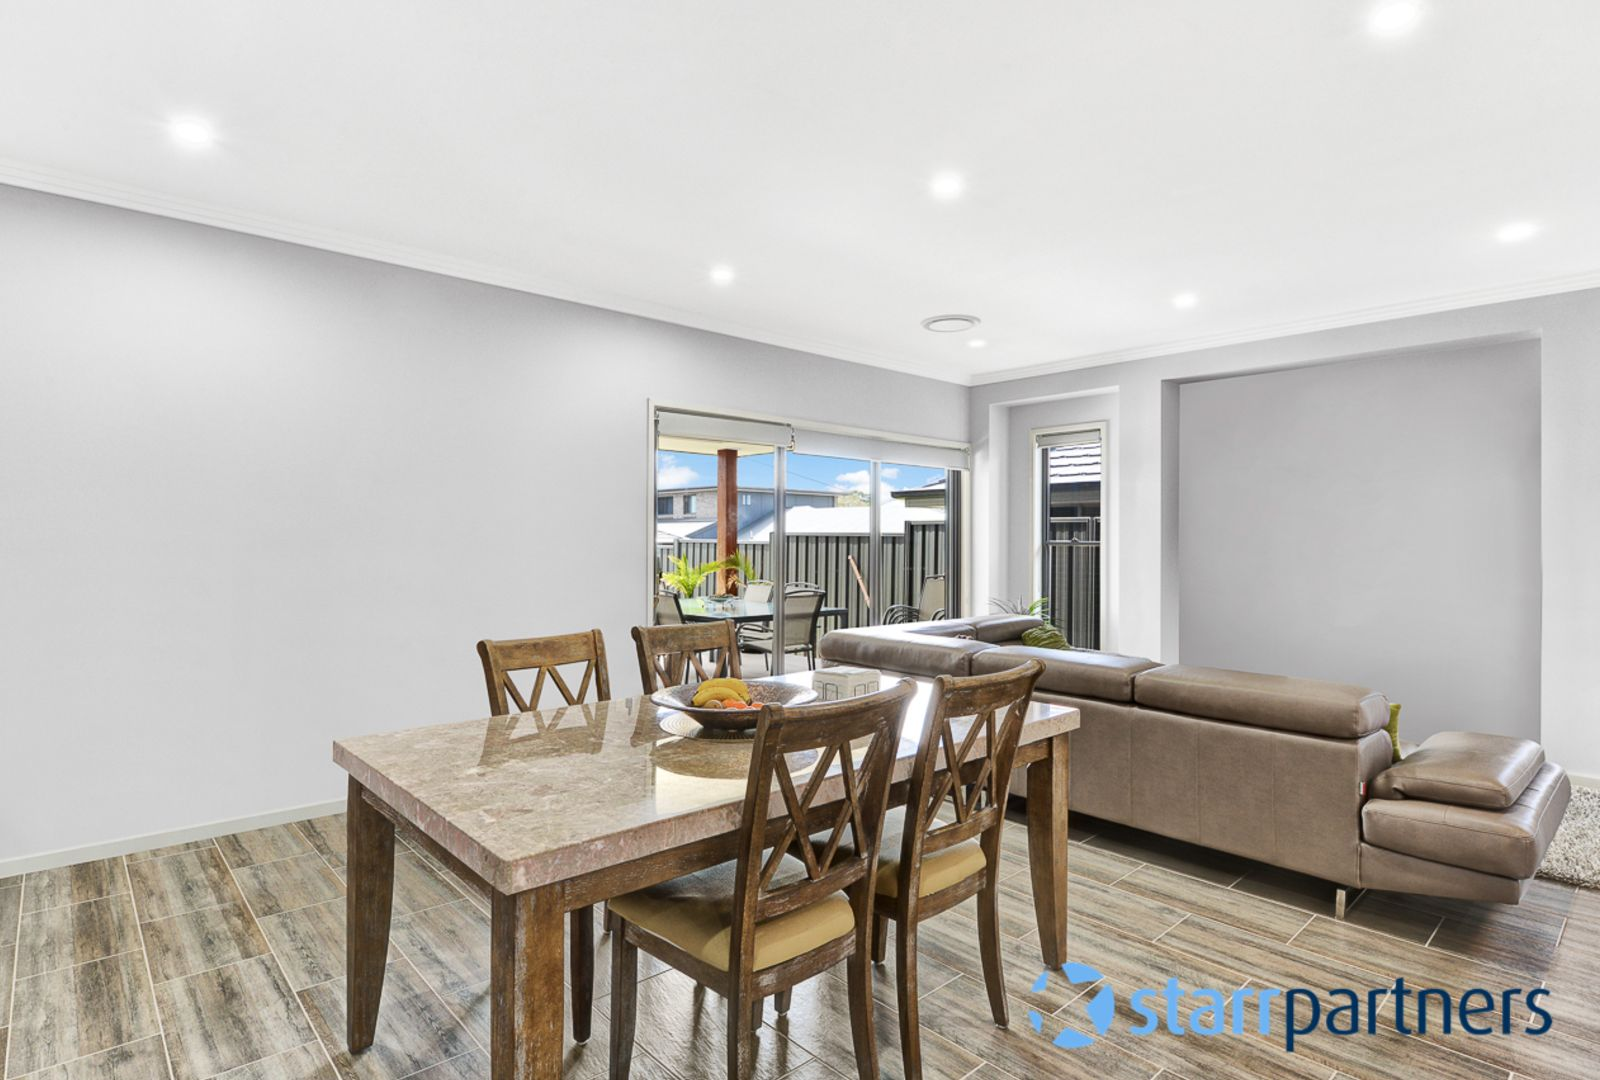 26 Correllis St, Harrington Park NSW 2567, Image 2